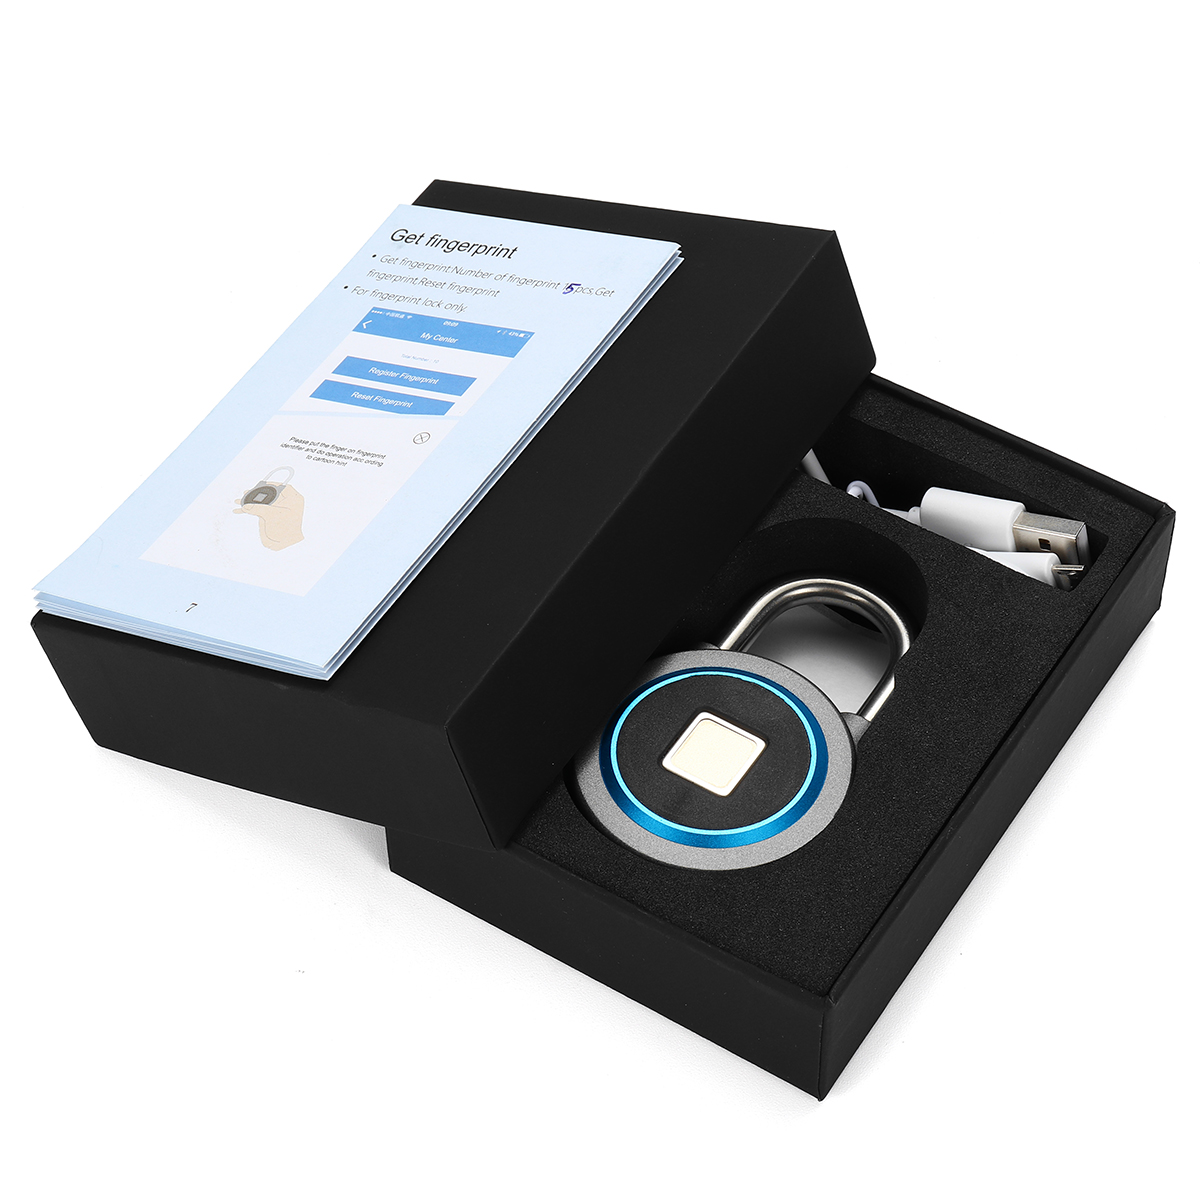 Fingerprint Recognition Bluetooth Keyless Lock – Waterproof 5